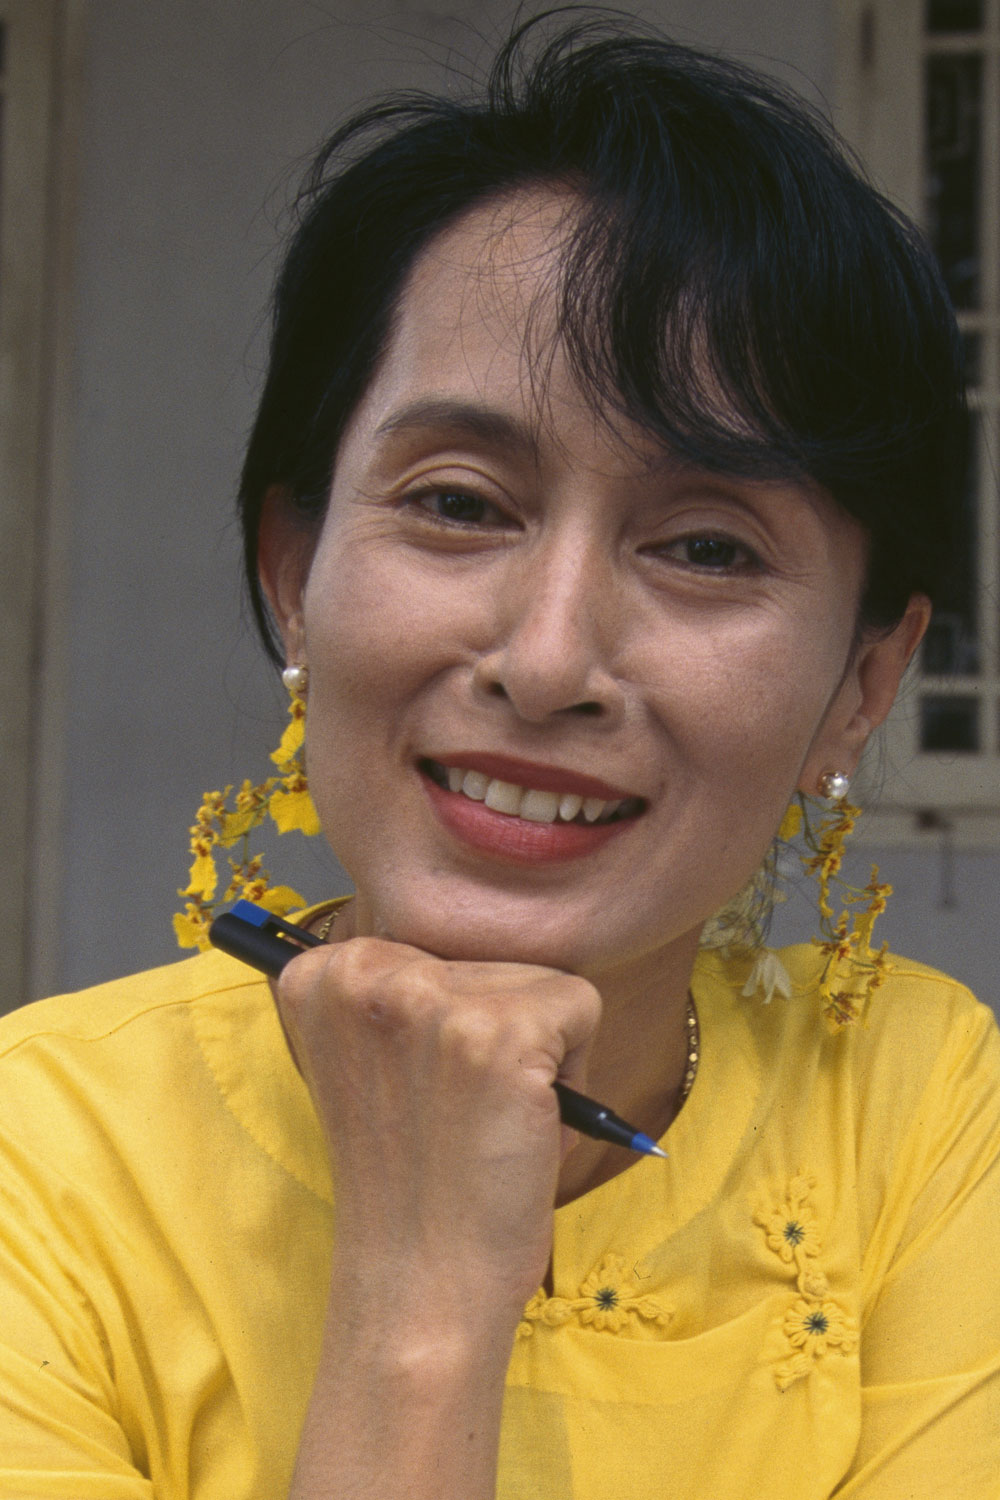 the person i admire most aung san suu kyi Leadership secrets of aung san suu kyi pa 762 yoko shimizu may, 2015 ease of communicating with foreigners are entrepreneurial qualities that people admire.